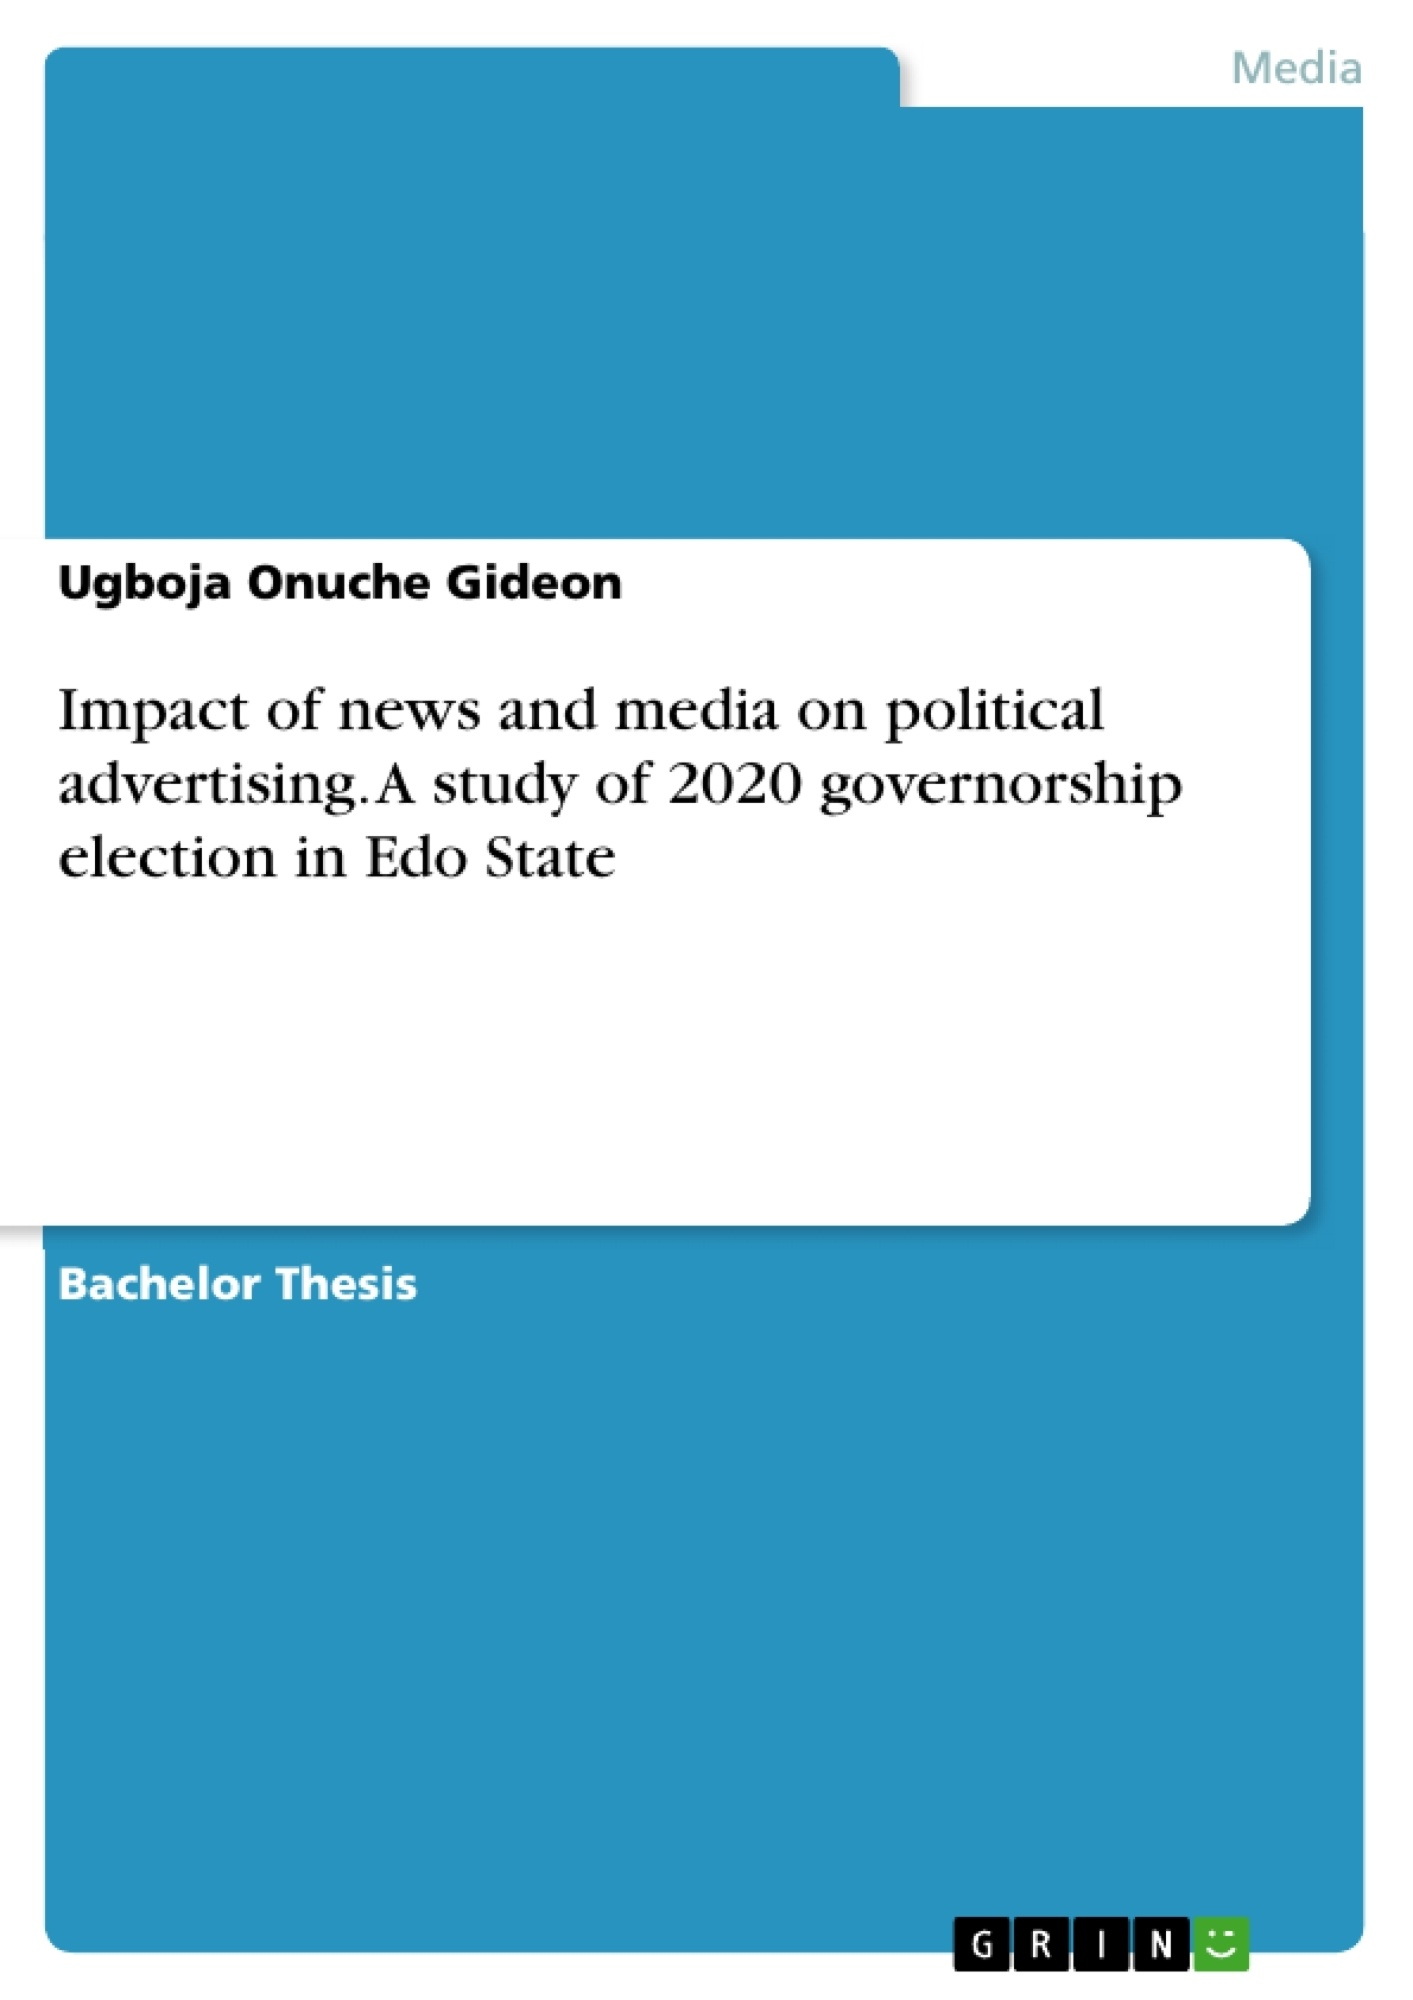 Title: Impact of news and media on political advertising. A study of 2020 governorship election in Edo State